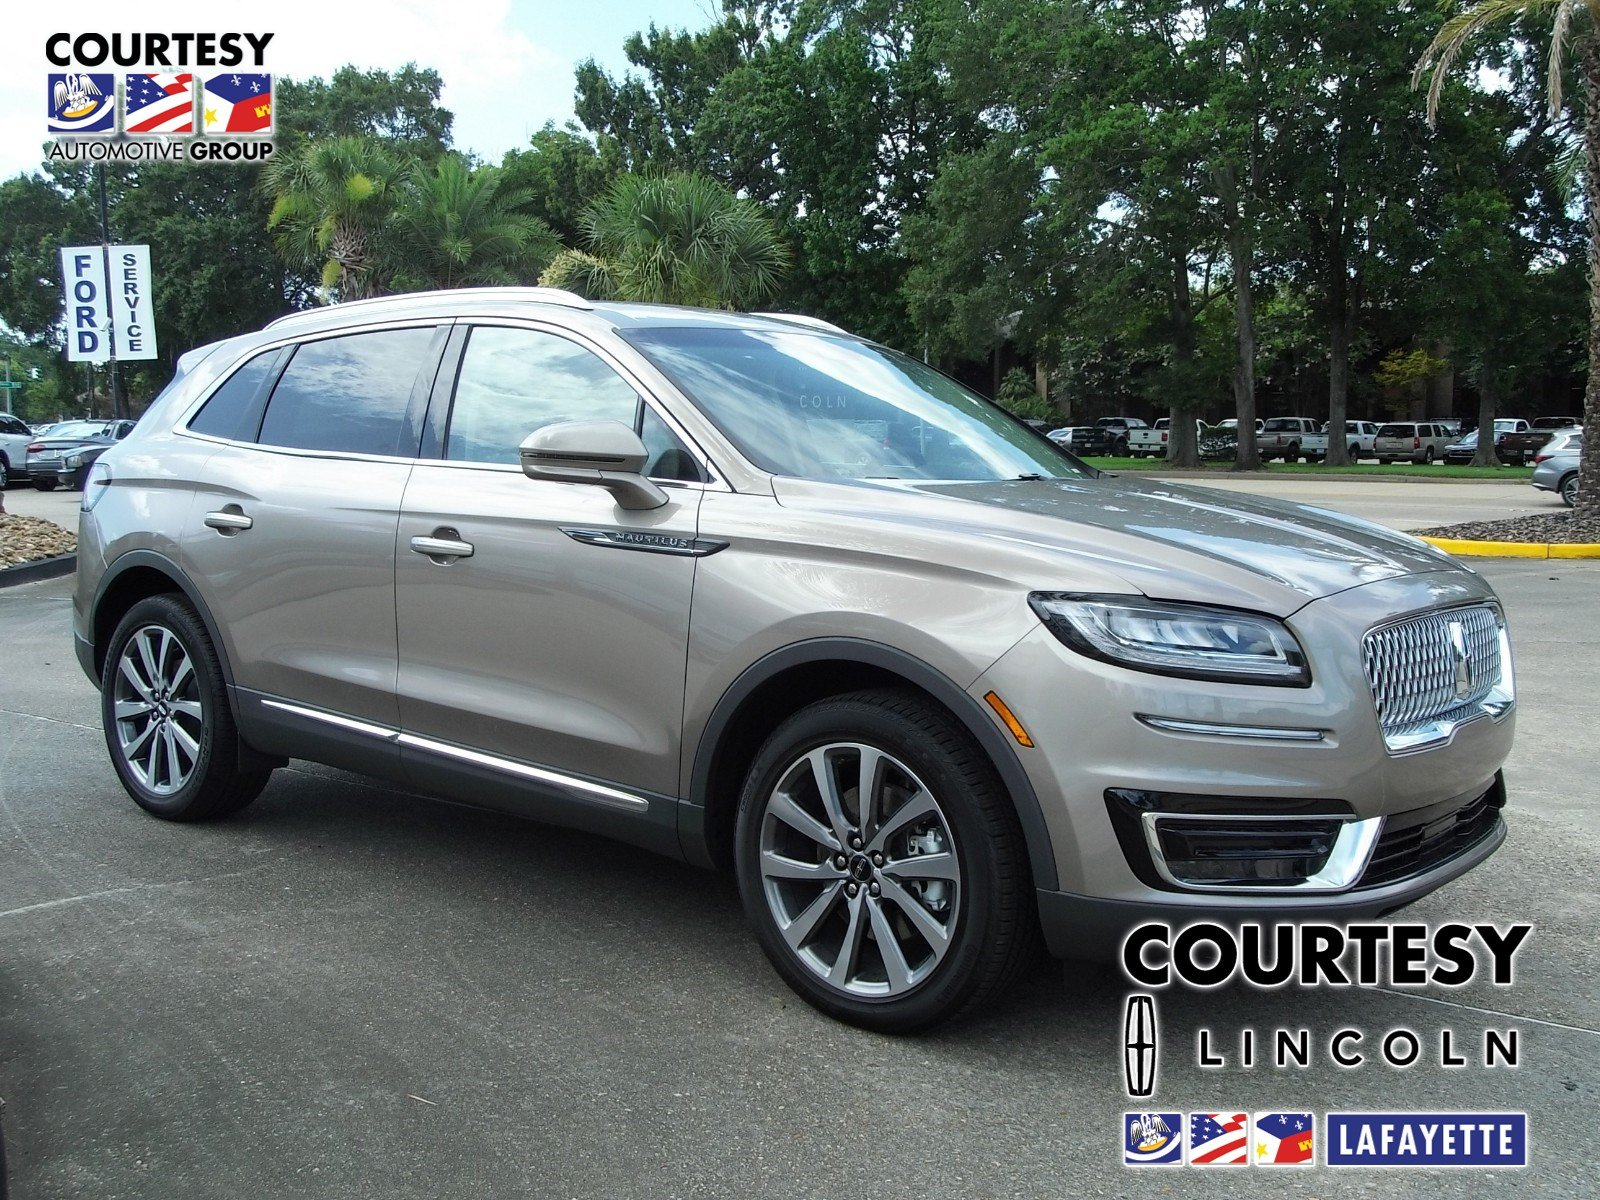 New 2019 Lincoln Nautilus For Sale at Courtesy Lincoln   VIN